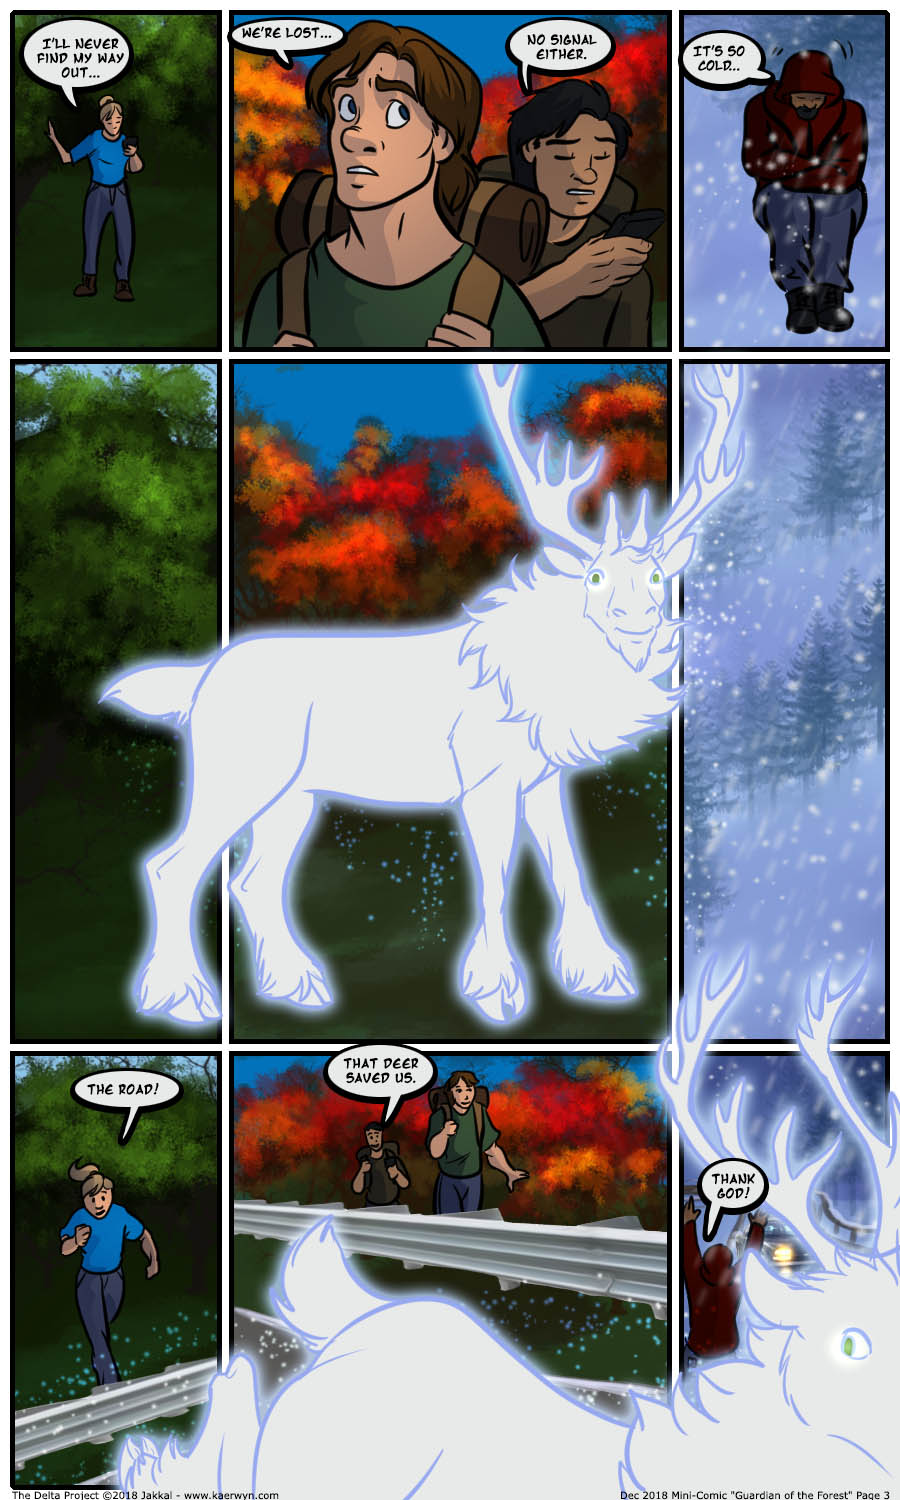 Most recent image: The Delta Project: Guardian of the Forest Page 3